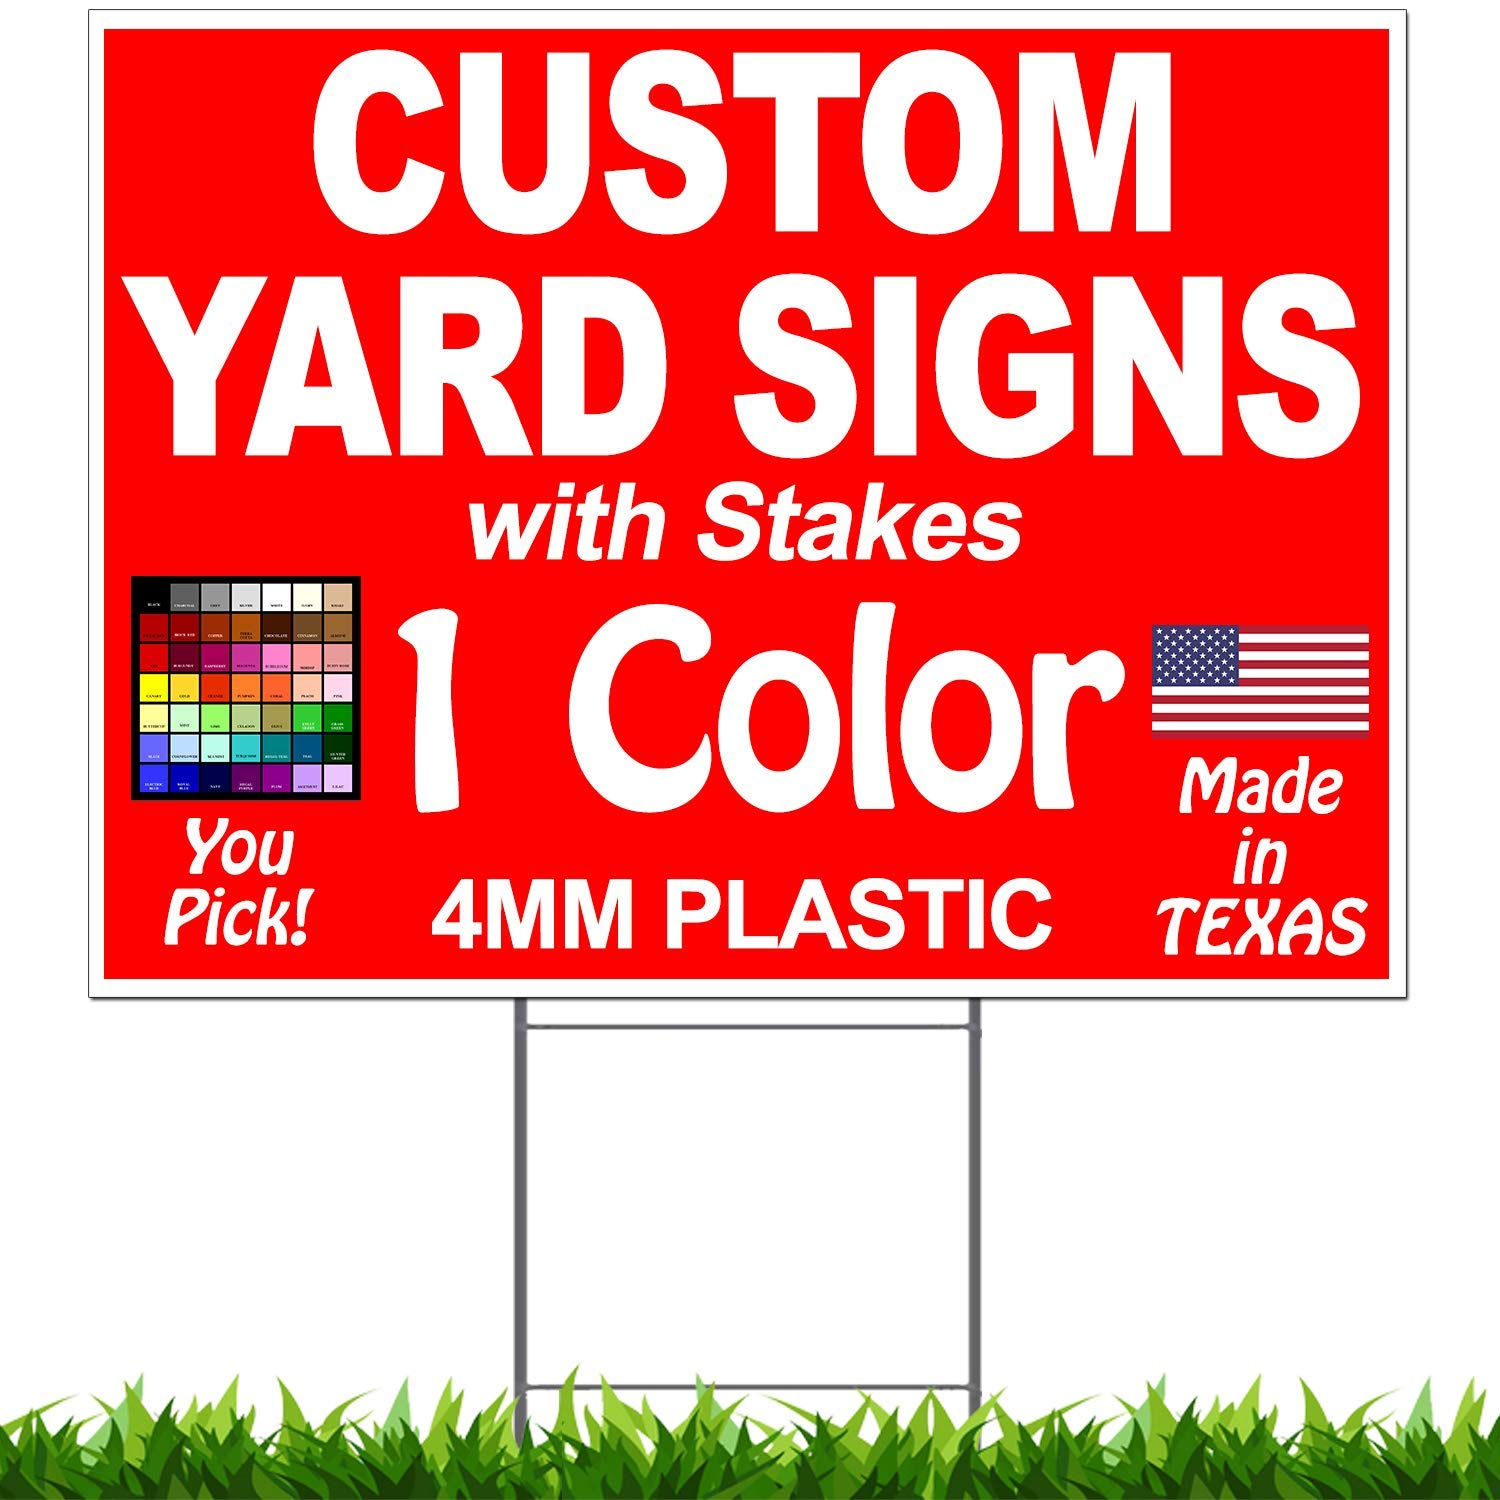 "Vibe Ink Pack of 100-18""x24"" Custom Yard Signs - Plastic Lawn Signs - Print Double Sided - Front & Back + 30"" Heavy Duty Stakes Included"